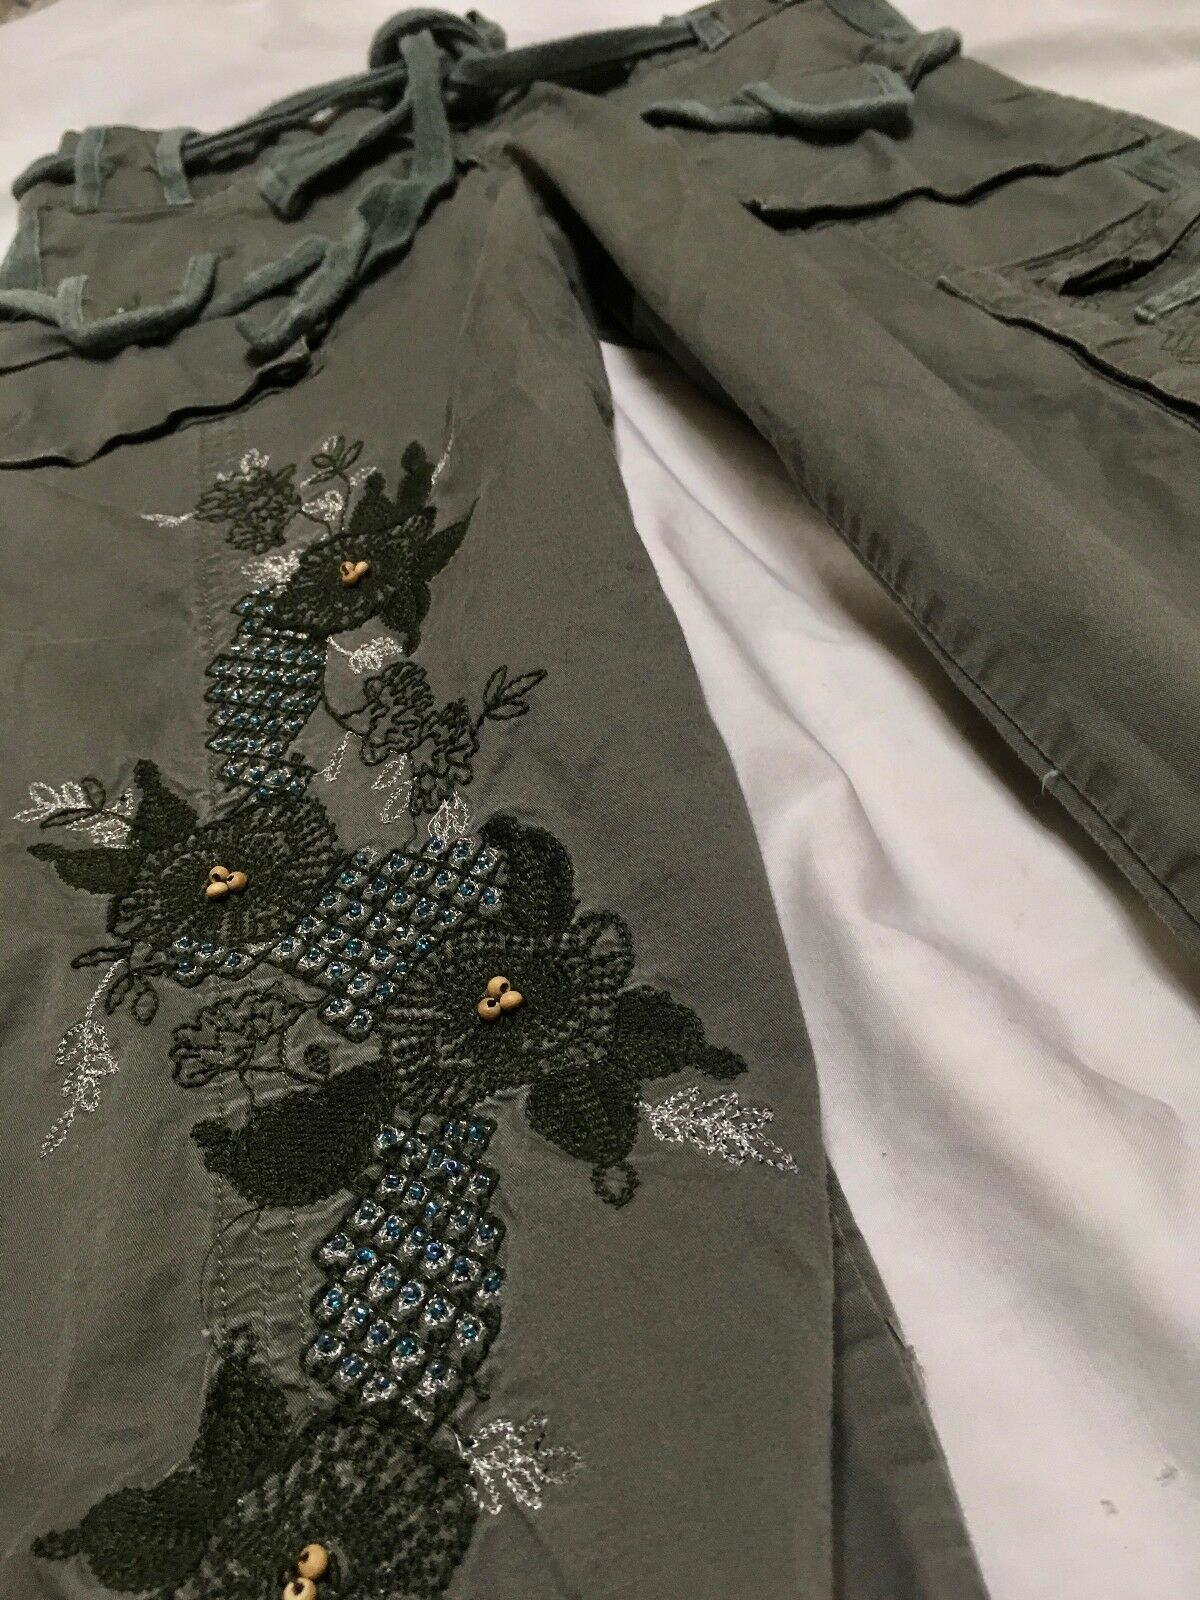 YAG army Grün embroiderot capris pants perfectly comfy and cute